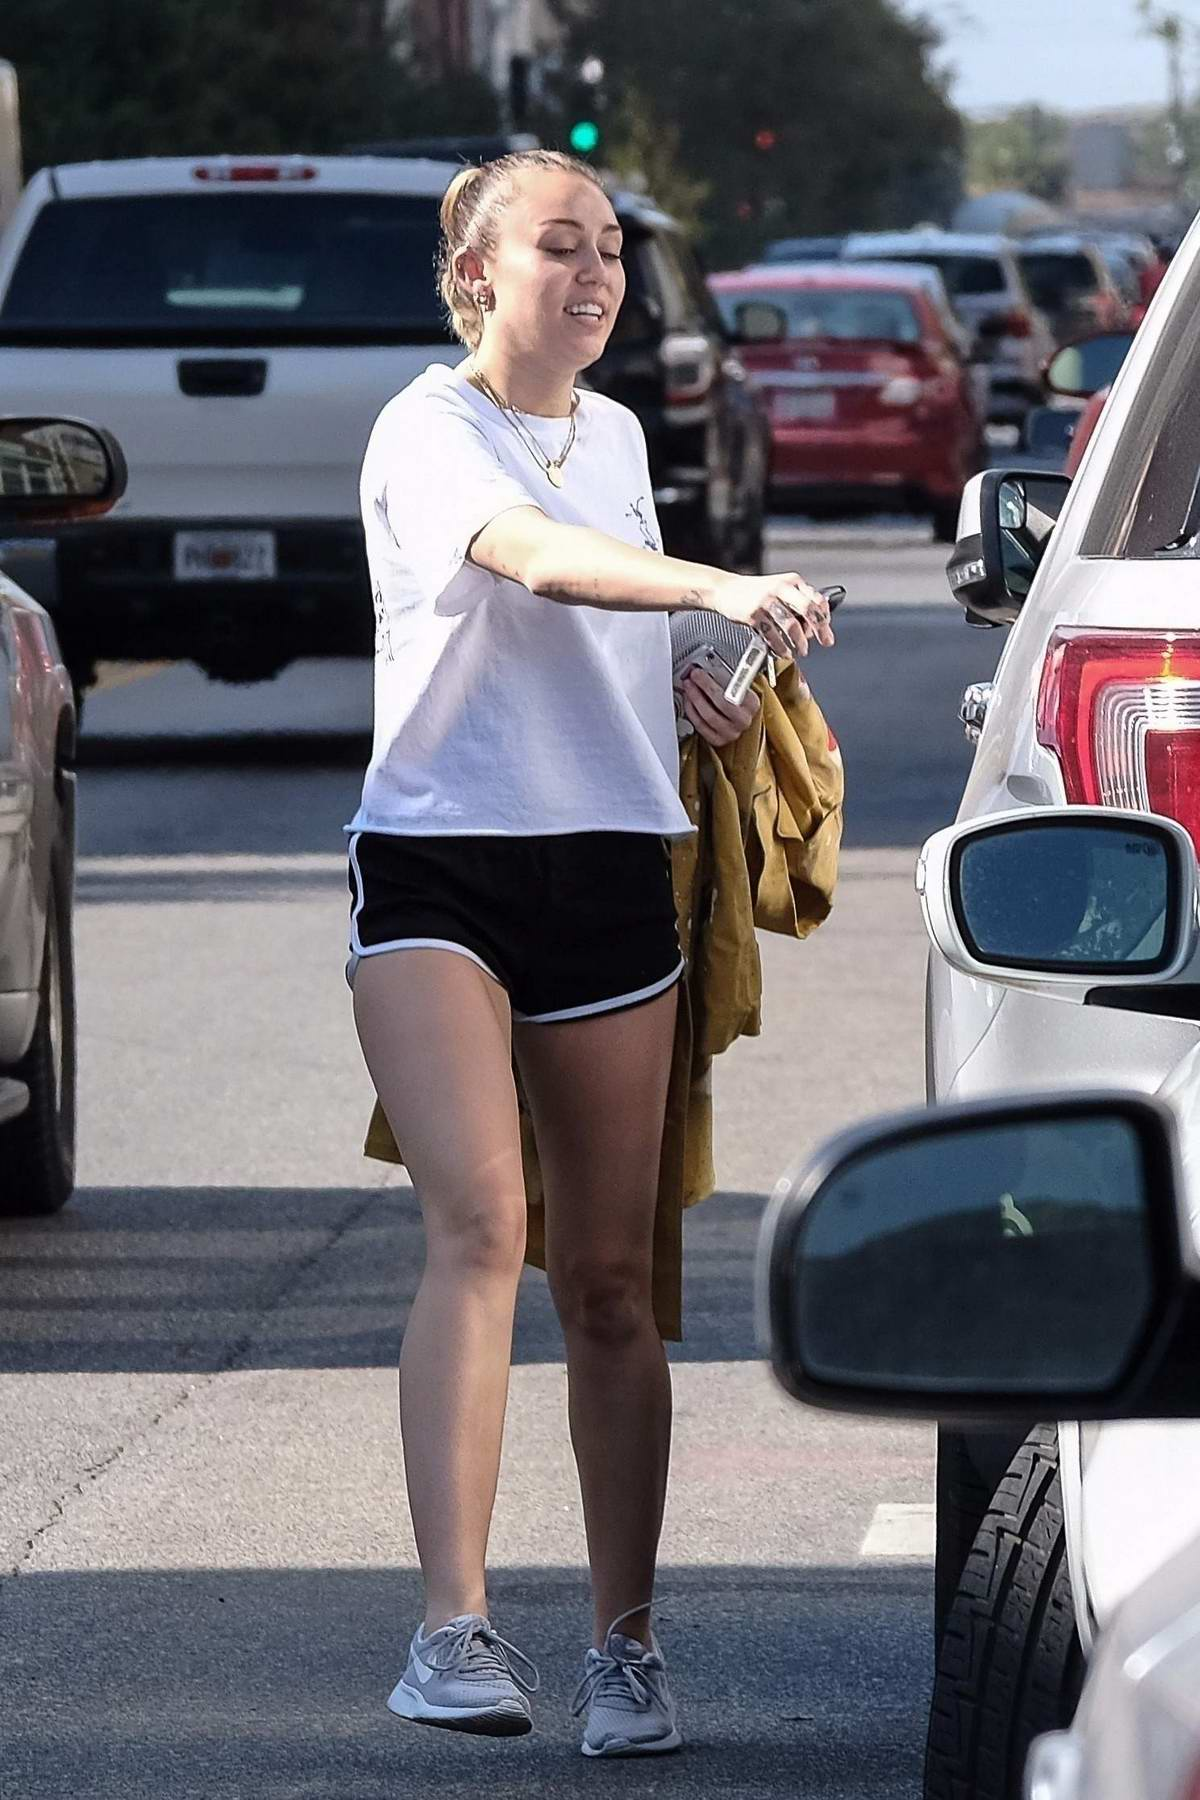 Miley Cyrus enjoys some solo thrift store shopping in Savannah, Georgia